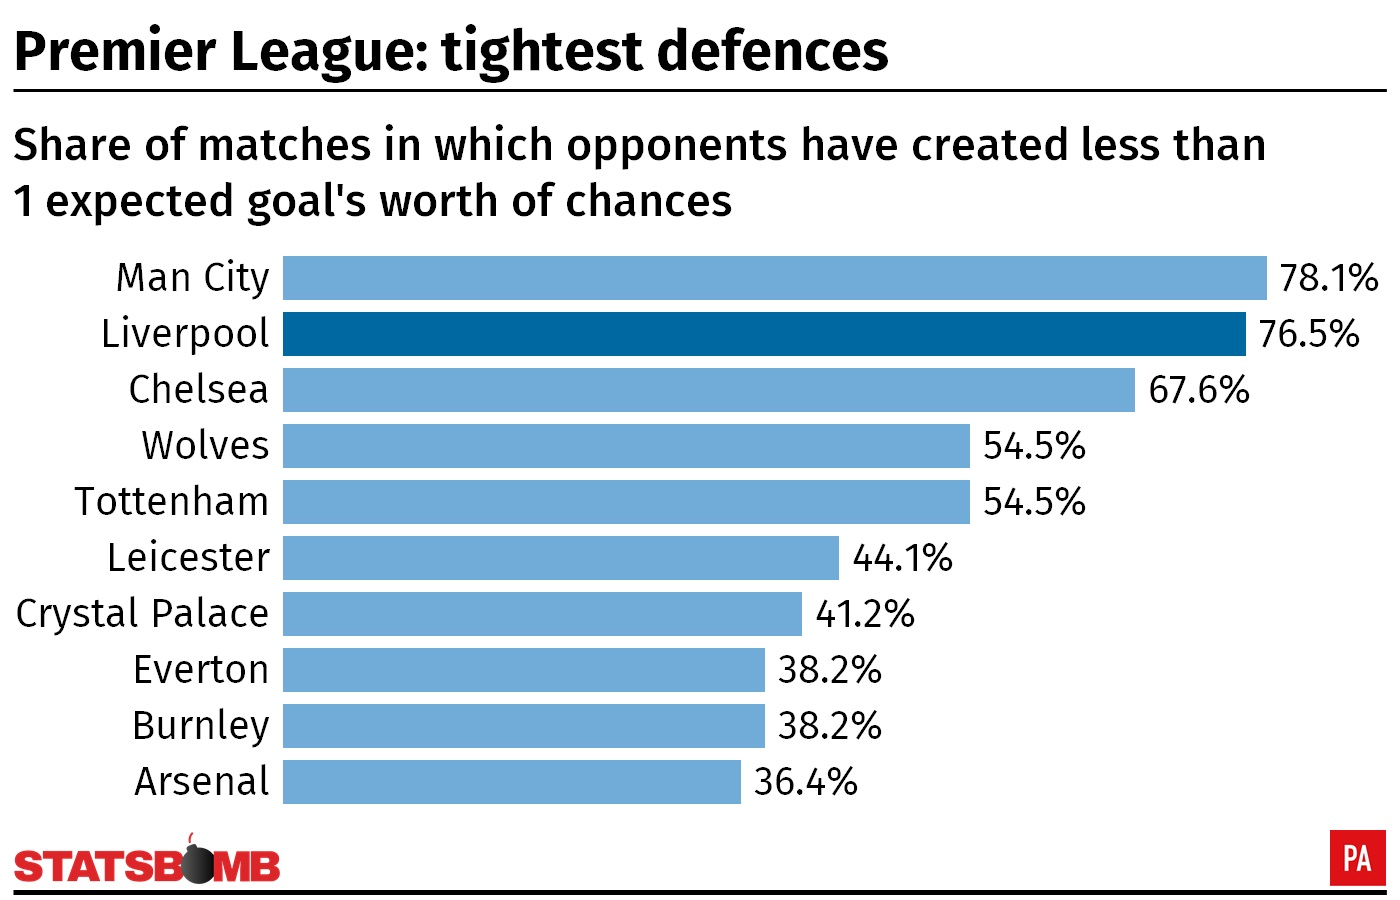 A table showing the tightest defences in the Premier League according to expected goals